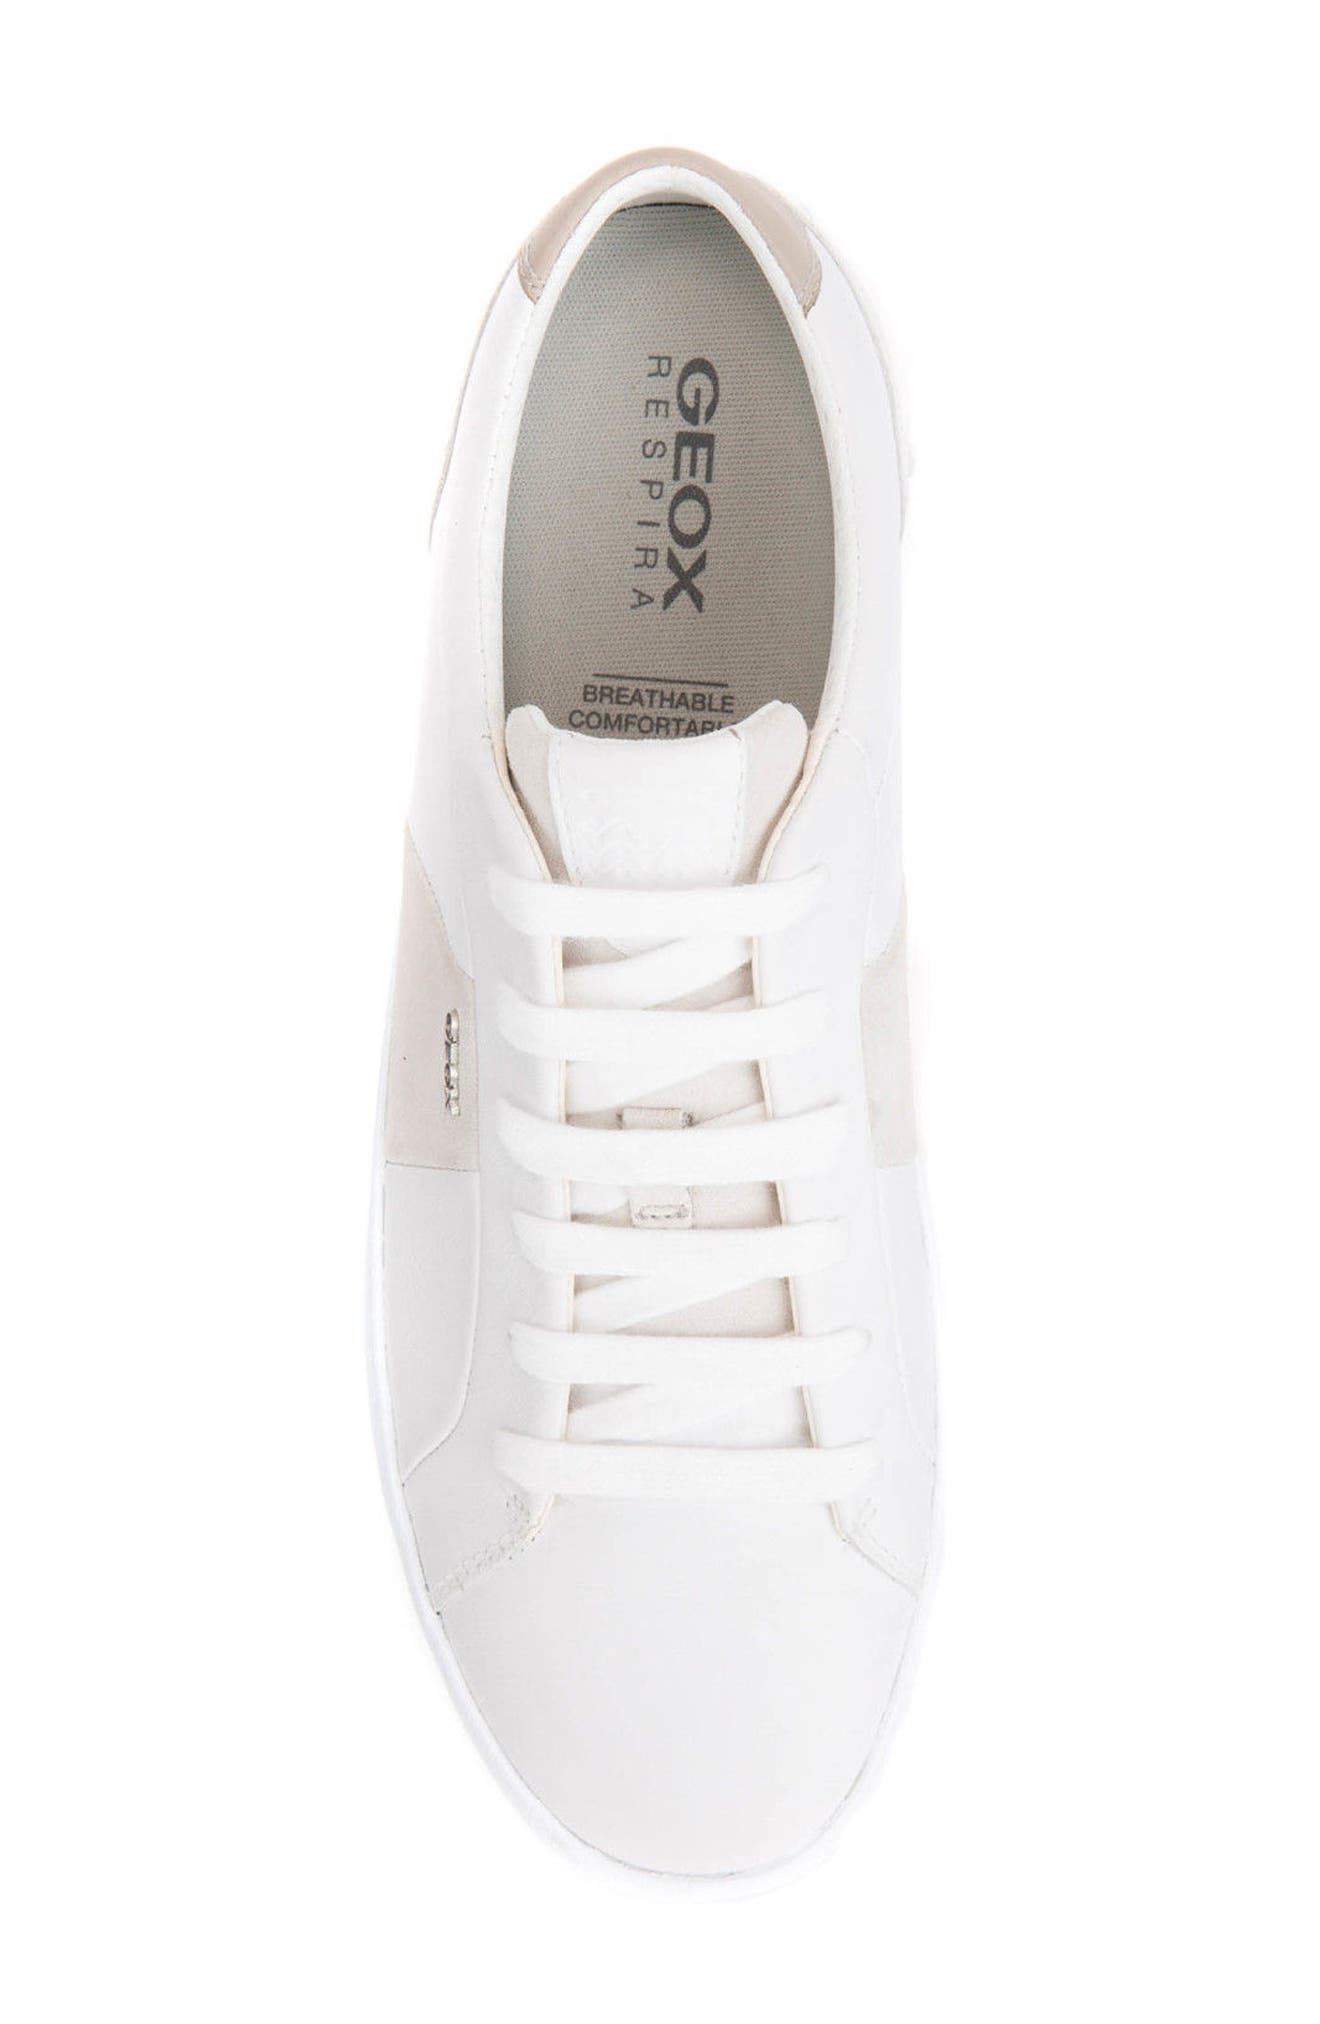 Smart 78 Sneaker,                             Alternate thumbnail 5, color,                             White/ Papyrus Leather